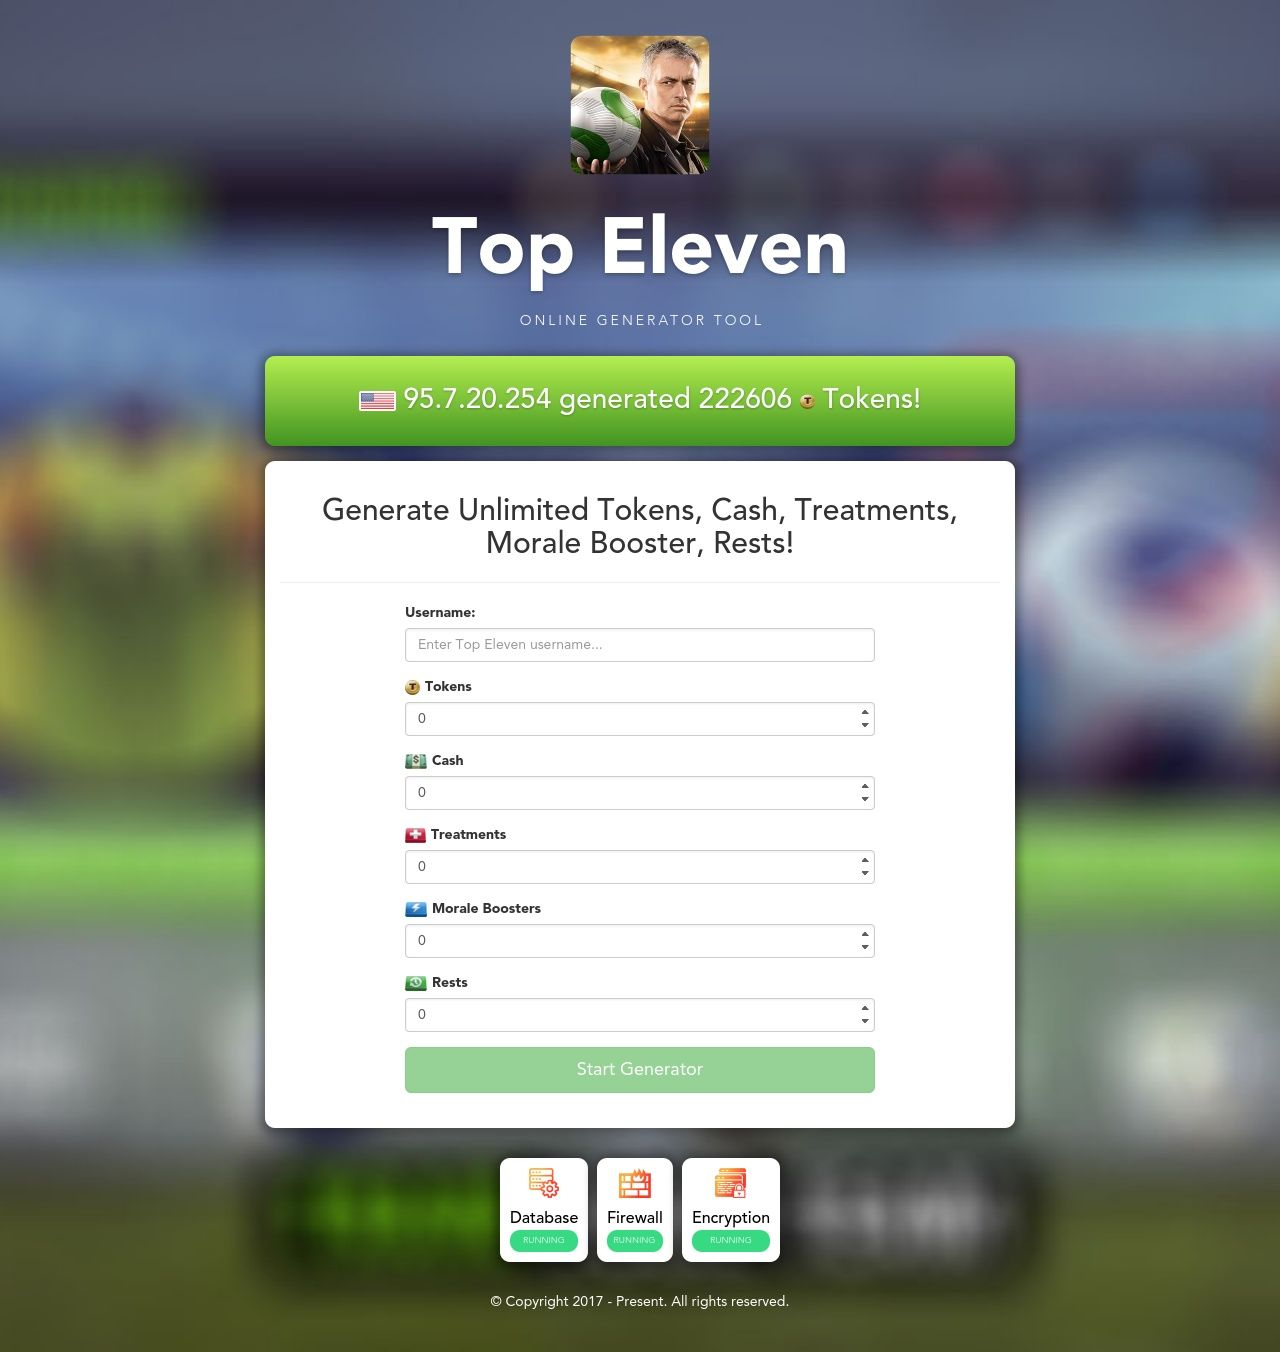 Top Eleven Hack Tool No Vertification Apk That Generates Unlimited Free Tokens Get Your Copy Now And Start Generating Unlimited Eleventh Generator Tool Hacks